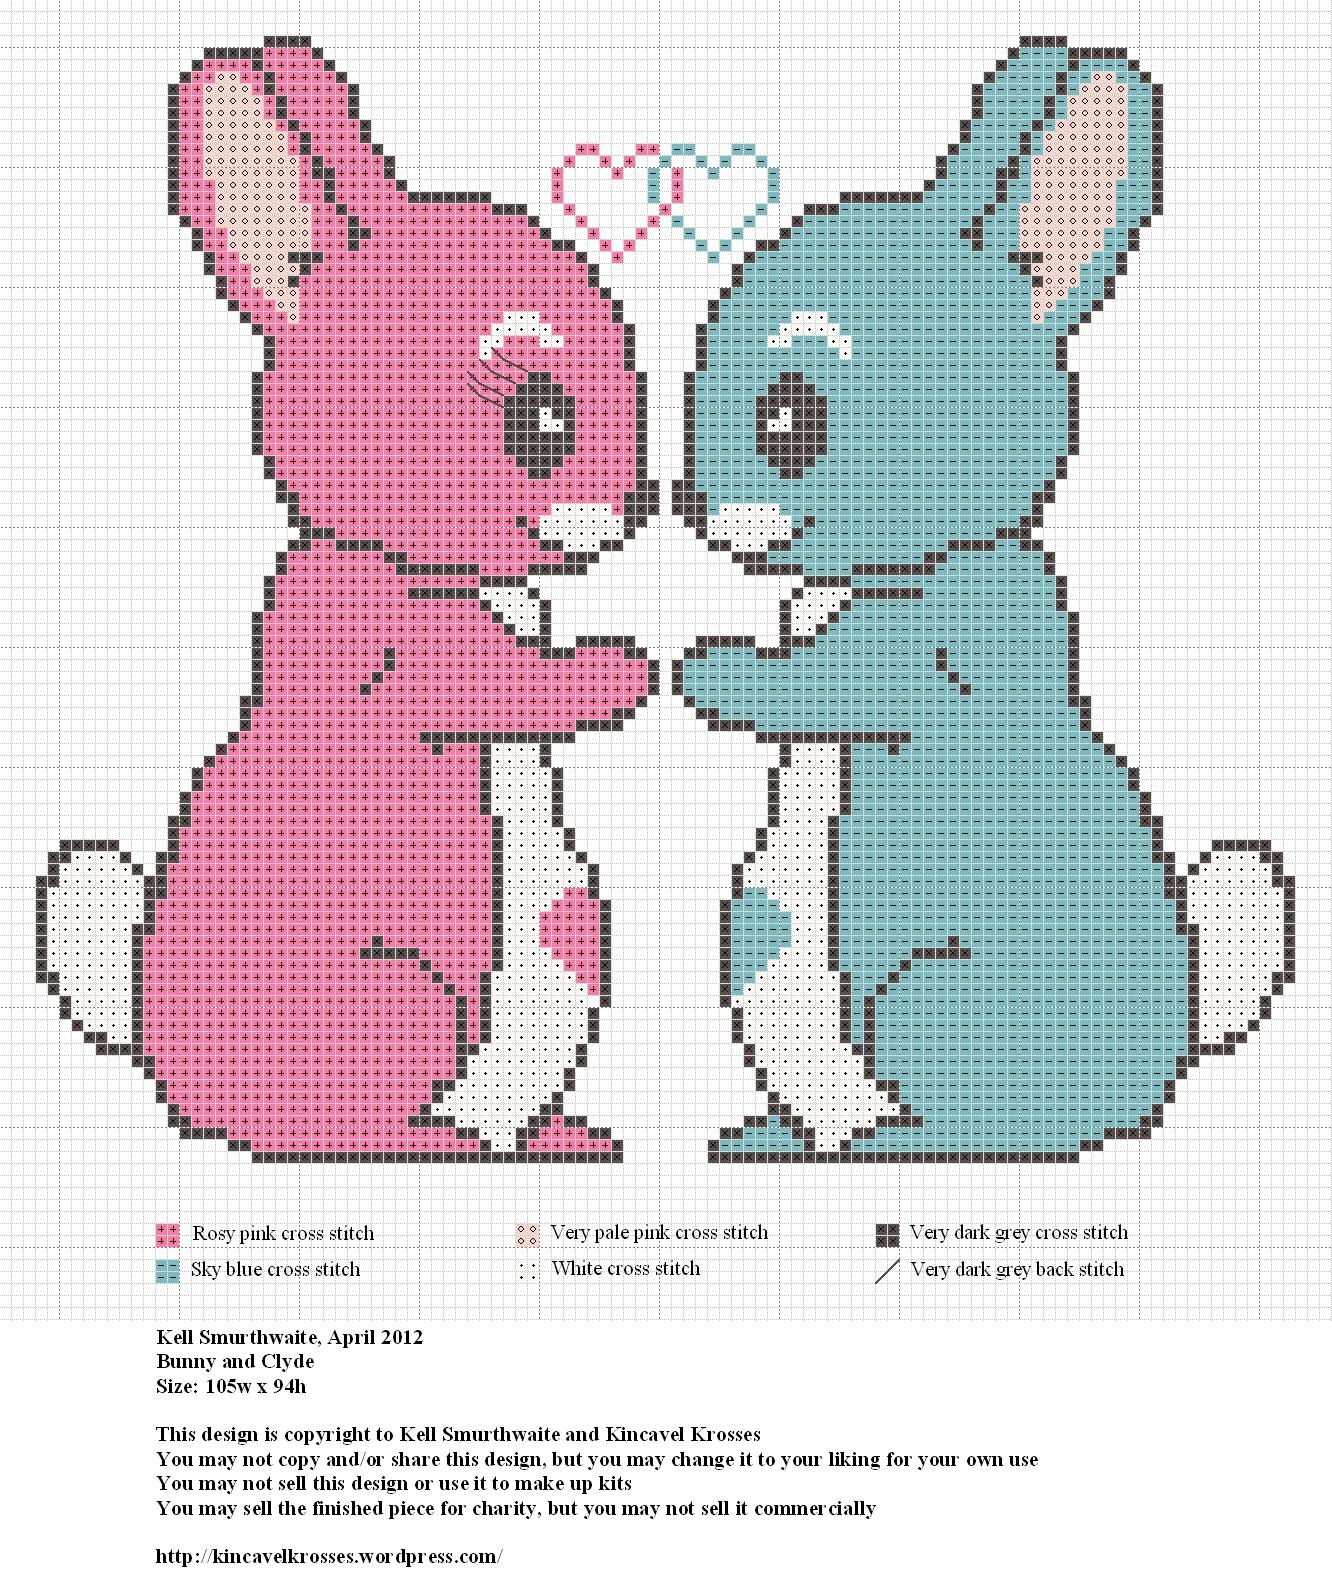 needlepoint stitches stitch diagrams tekonsha voyager electric brake controller wiring diagram bunny and clyde kincavel krosses